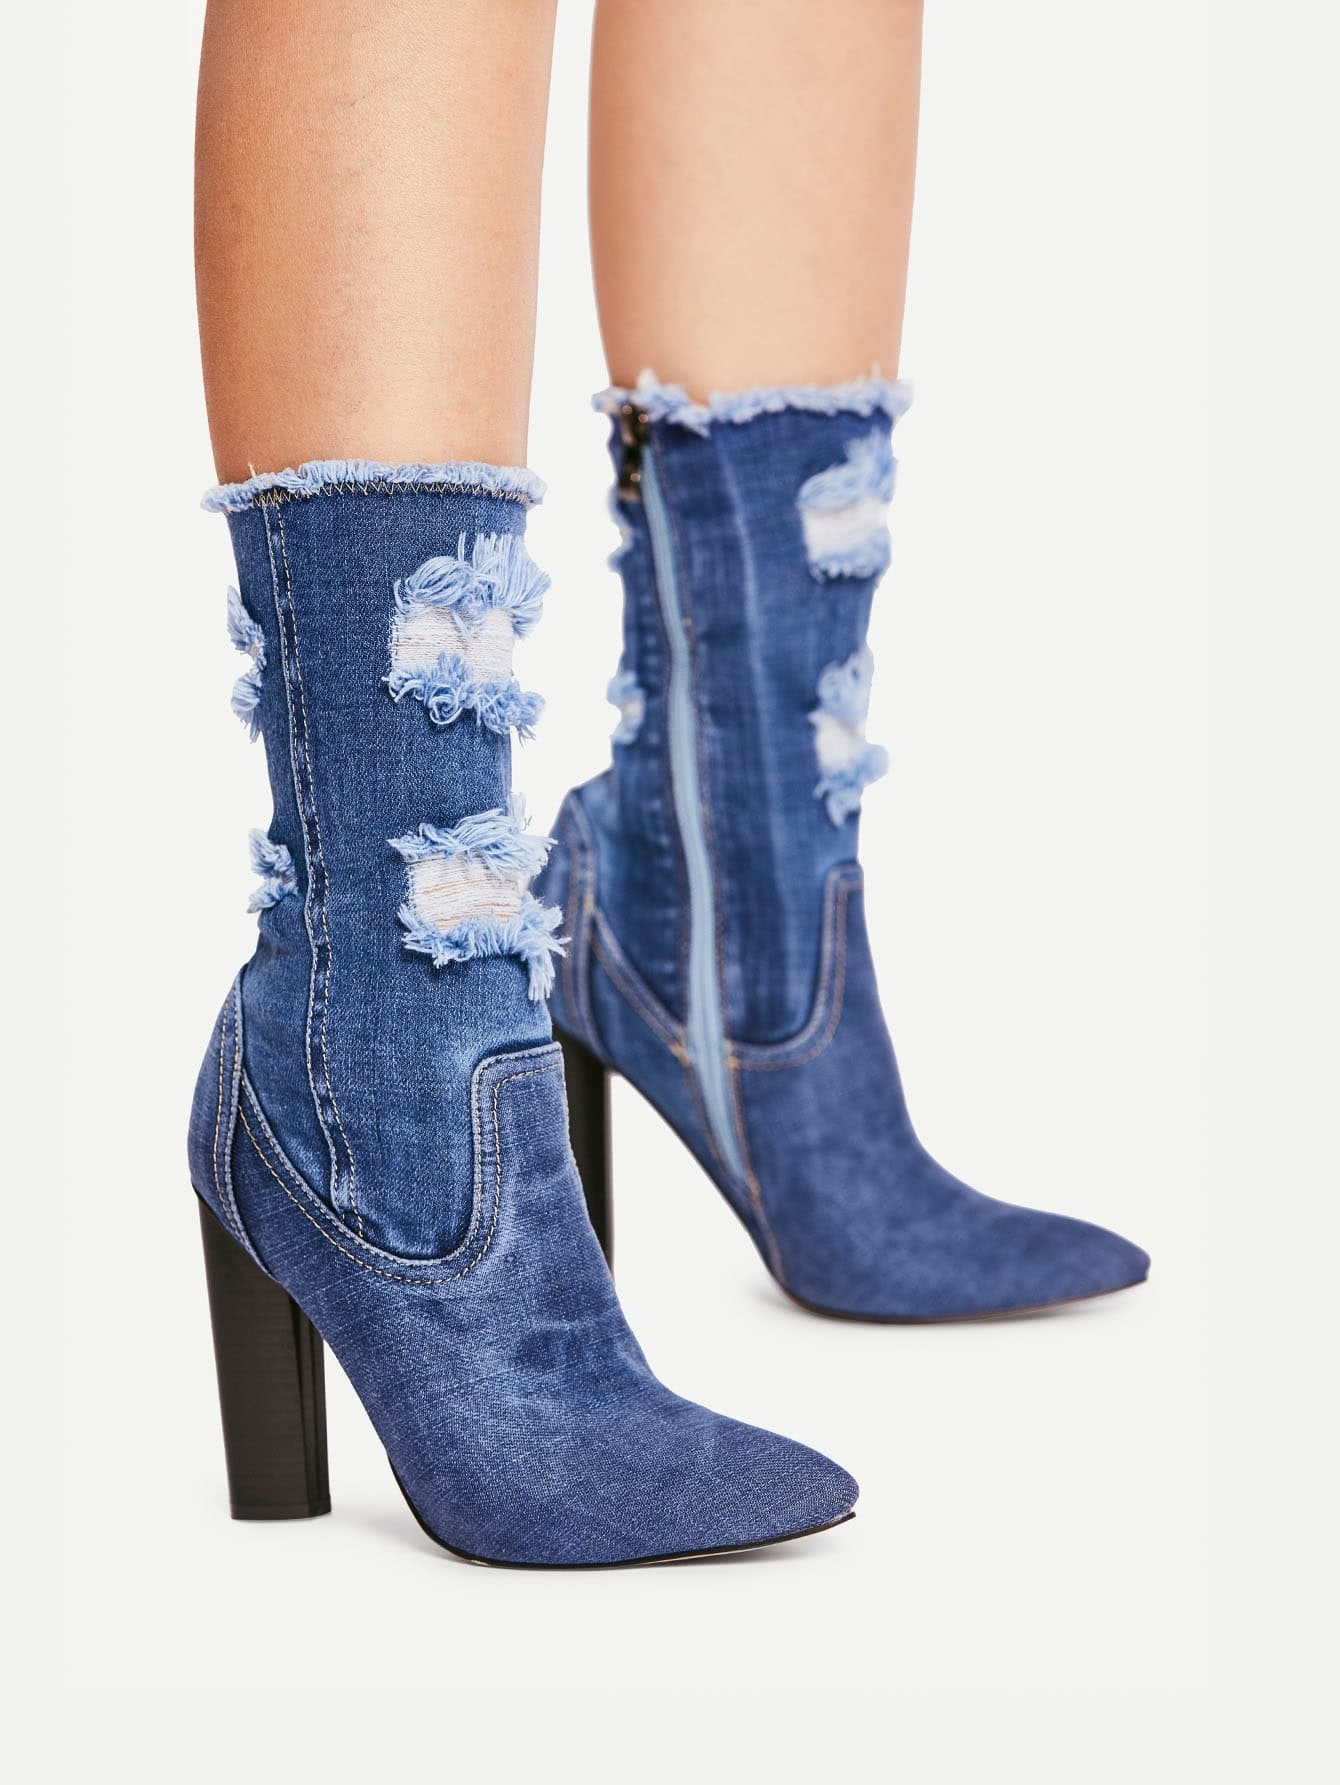 Distressed Top Denim Ankle Boots -SheIn(Sheinside)